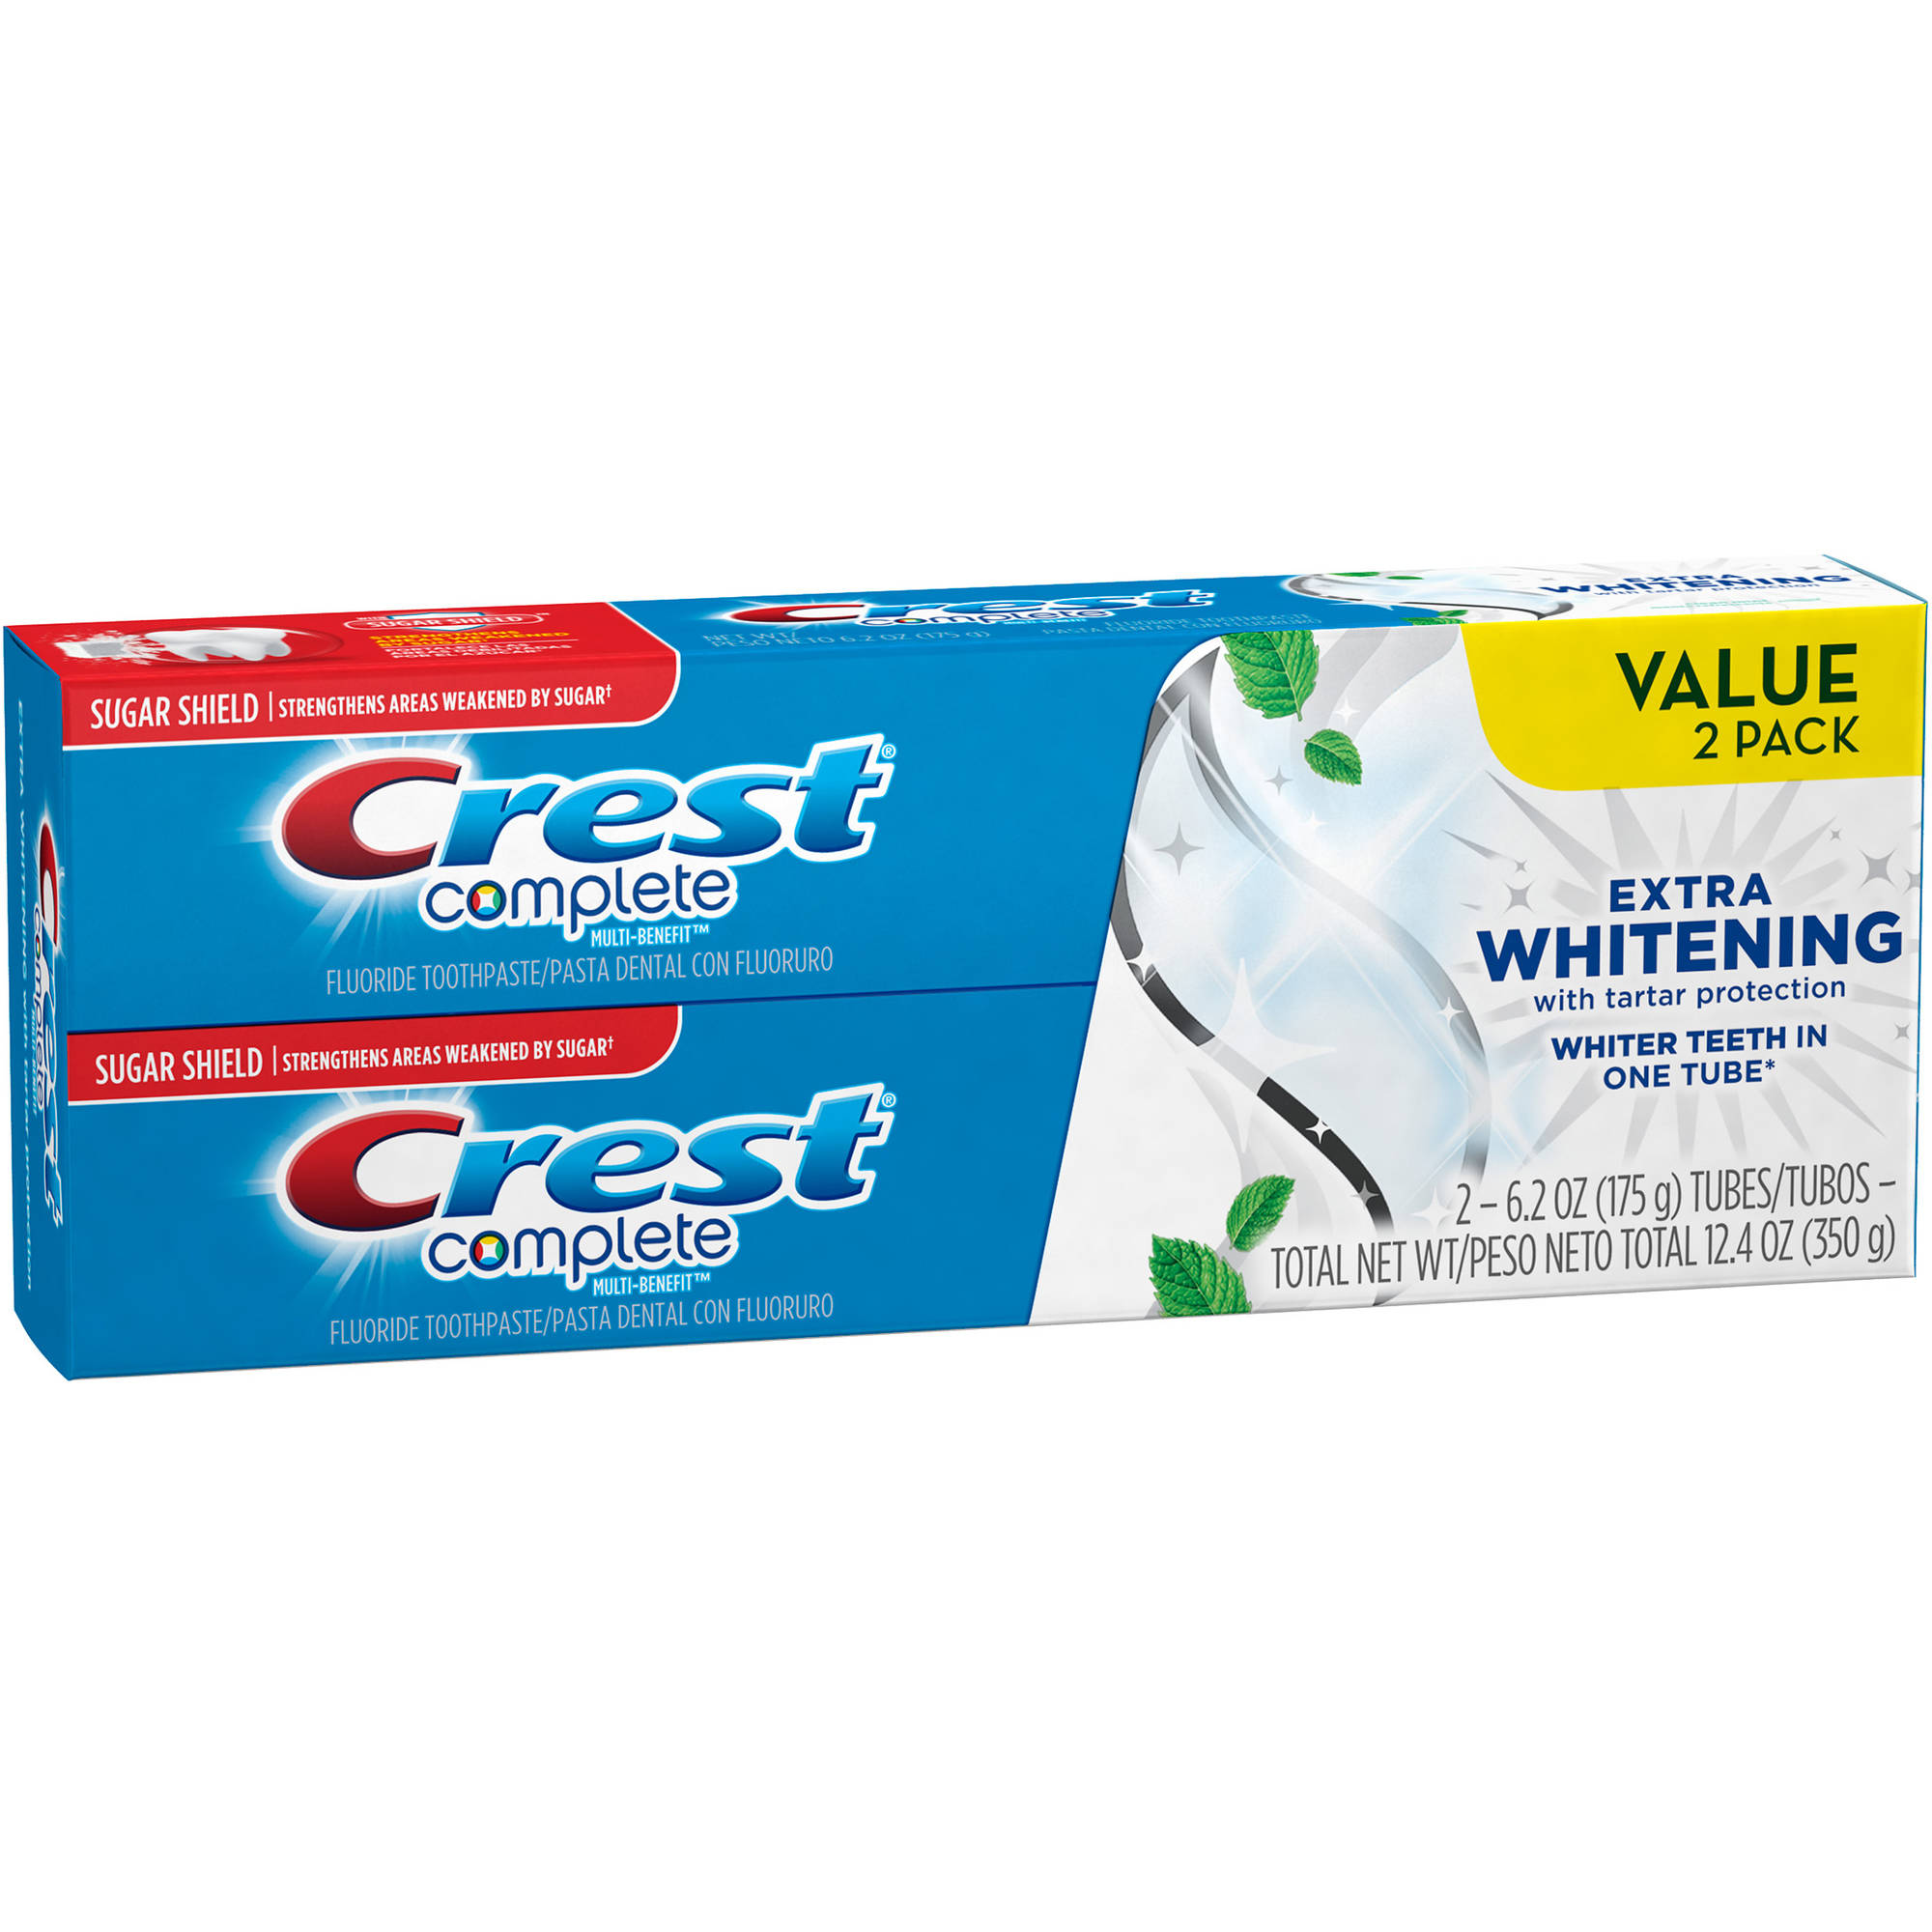 Crest Complete Clean Mint Flavor Extra Whitening Toothpaste with Tartar Protection, 6.2 oz, (Pack of 2)